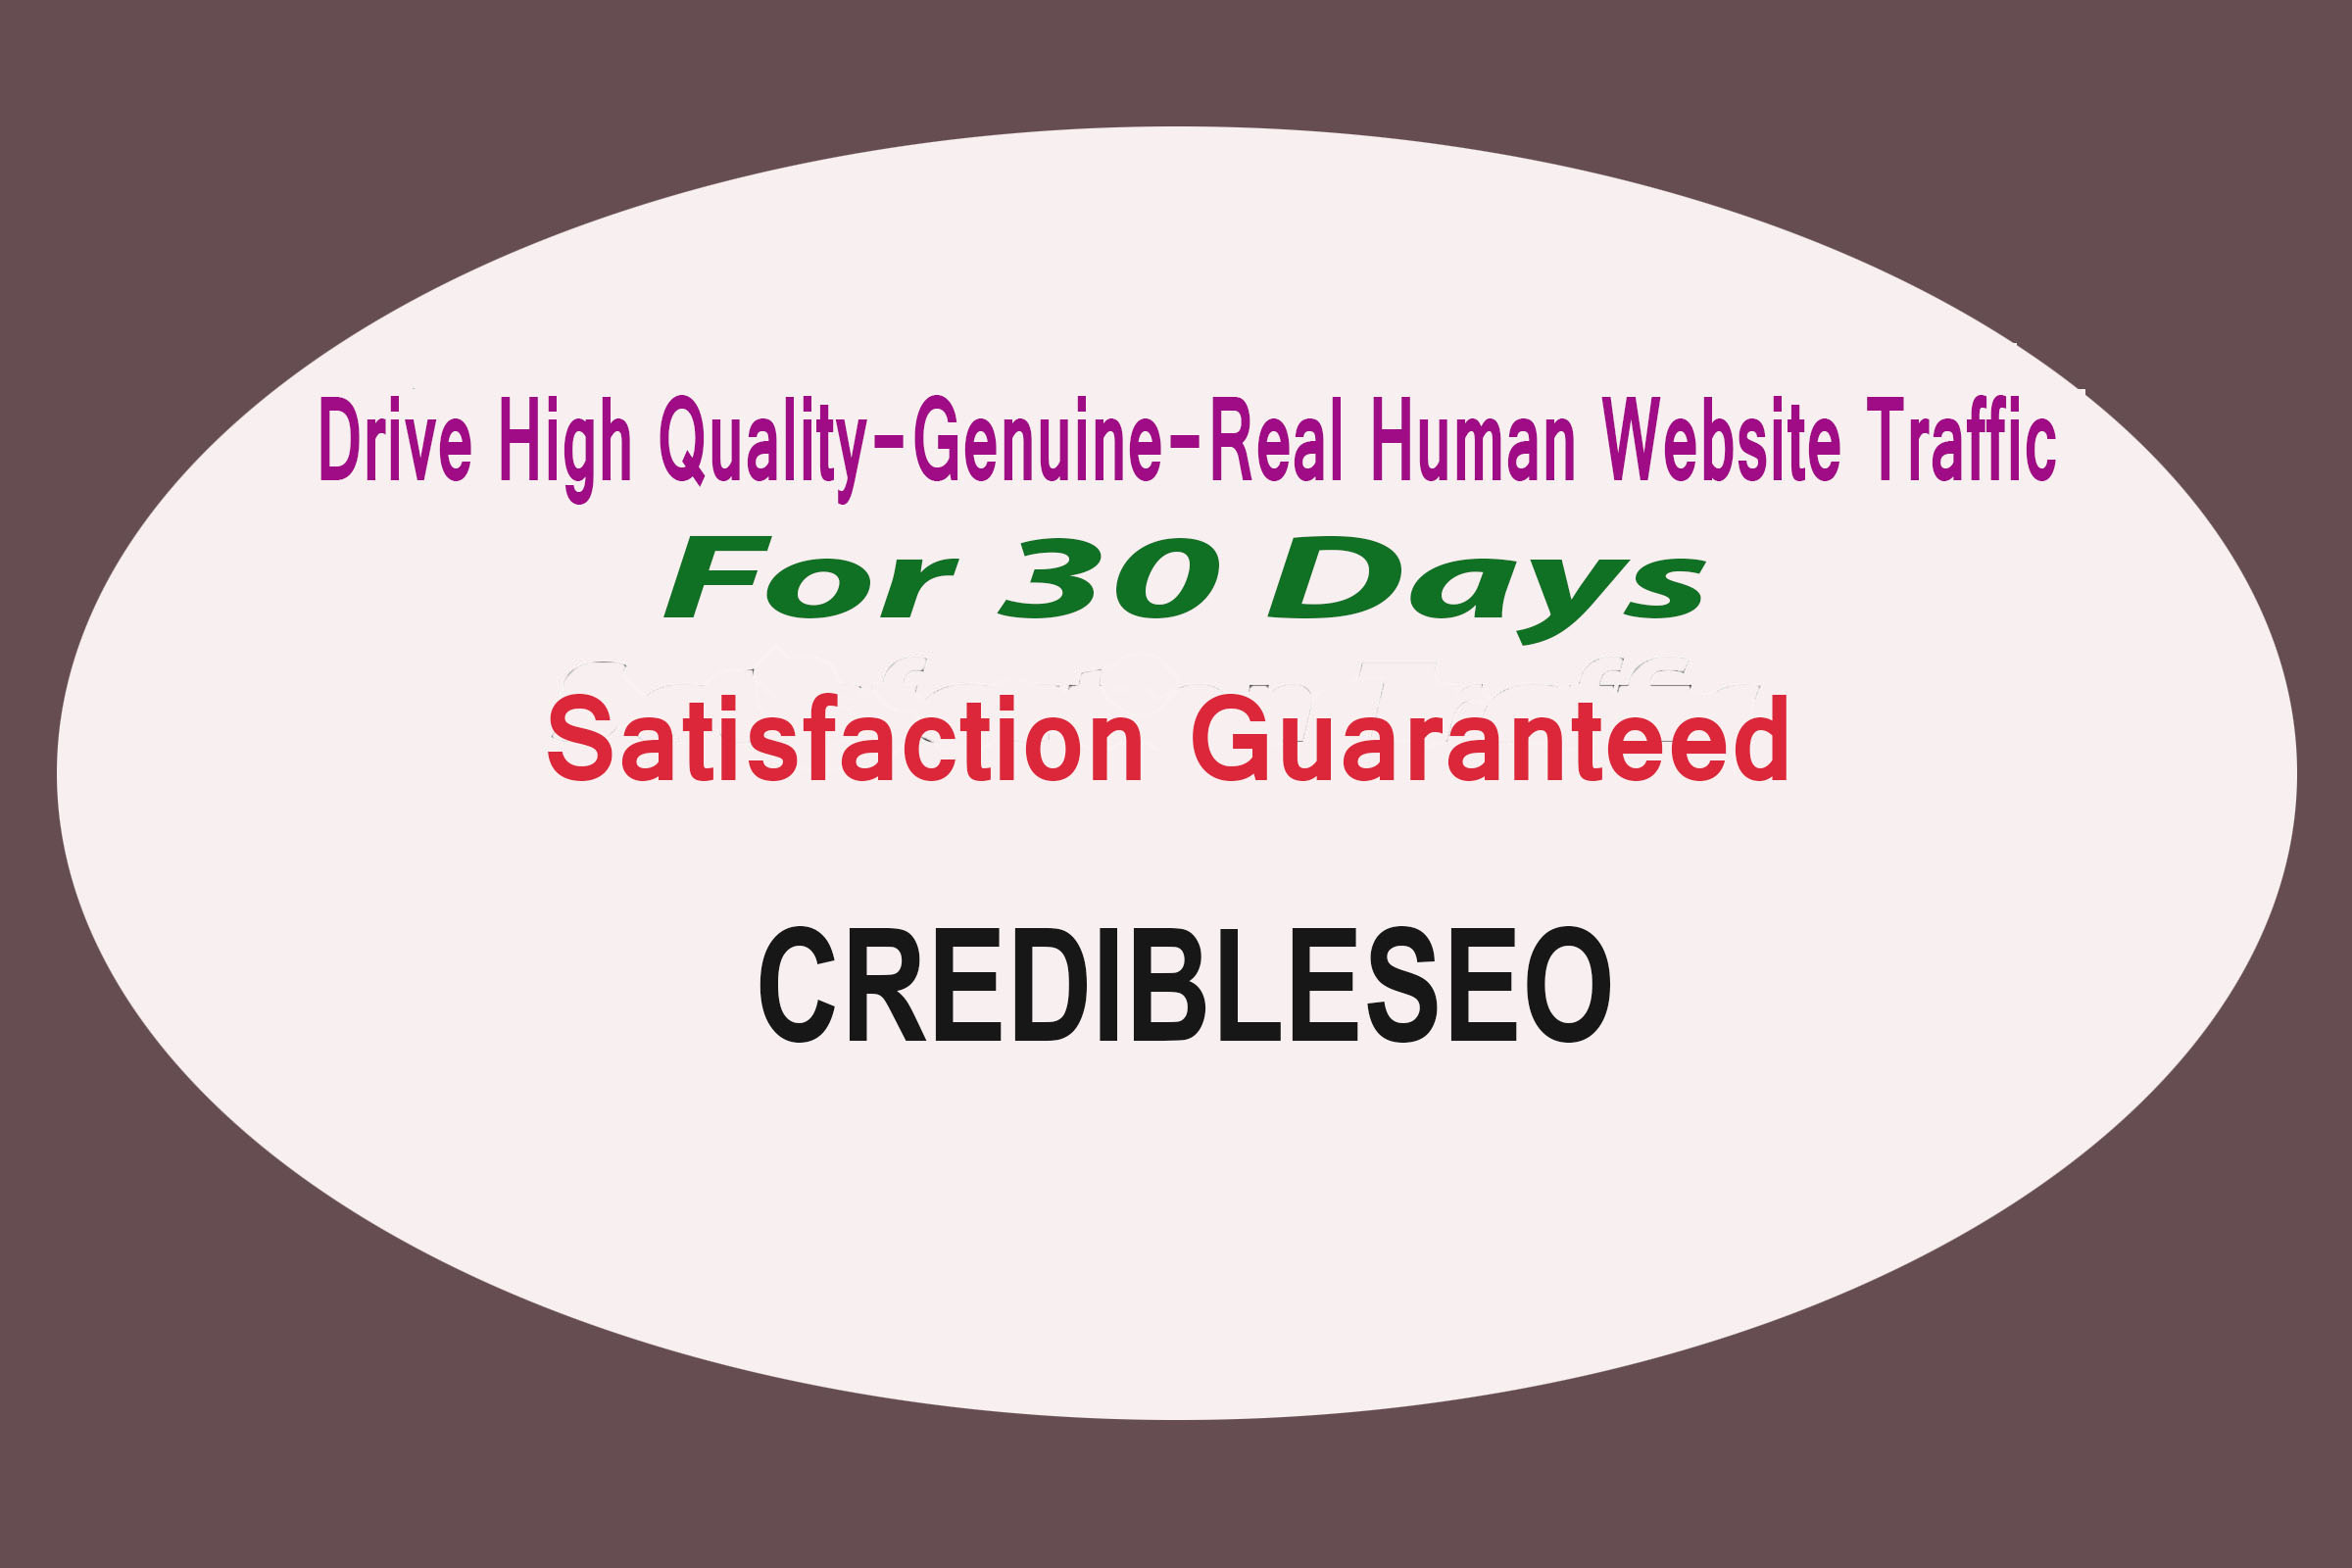 Provide High Quality, Genuine, Real Human Website Traffic Visitor For 30 Days